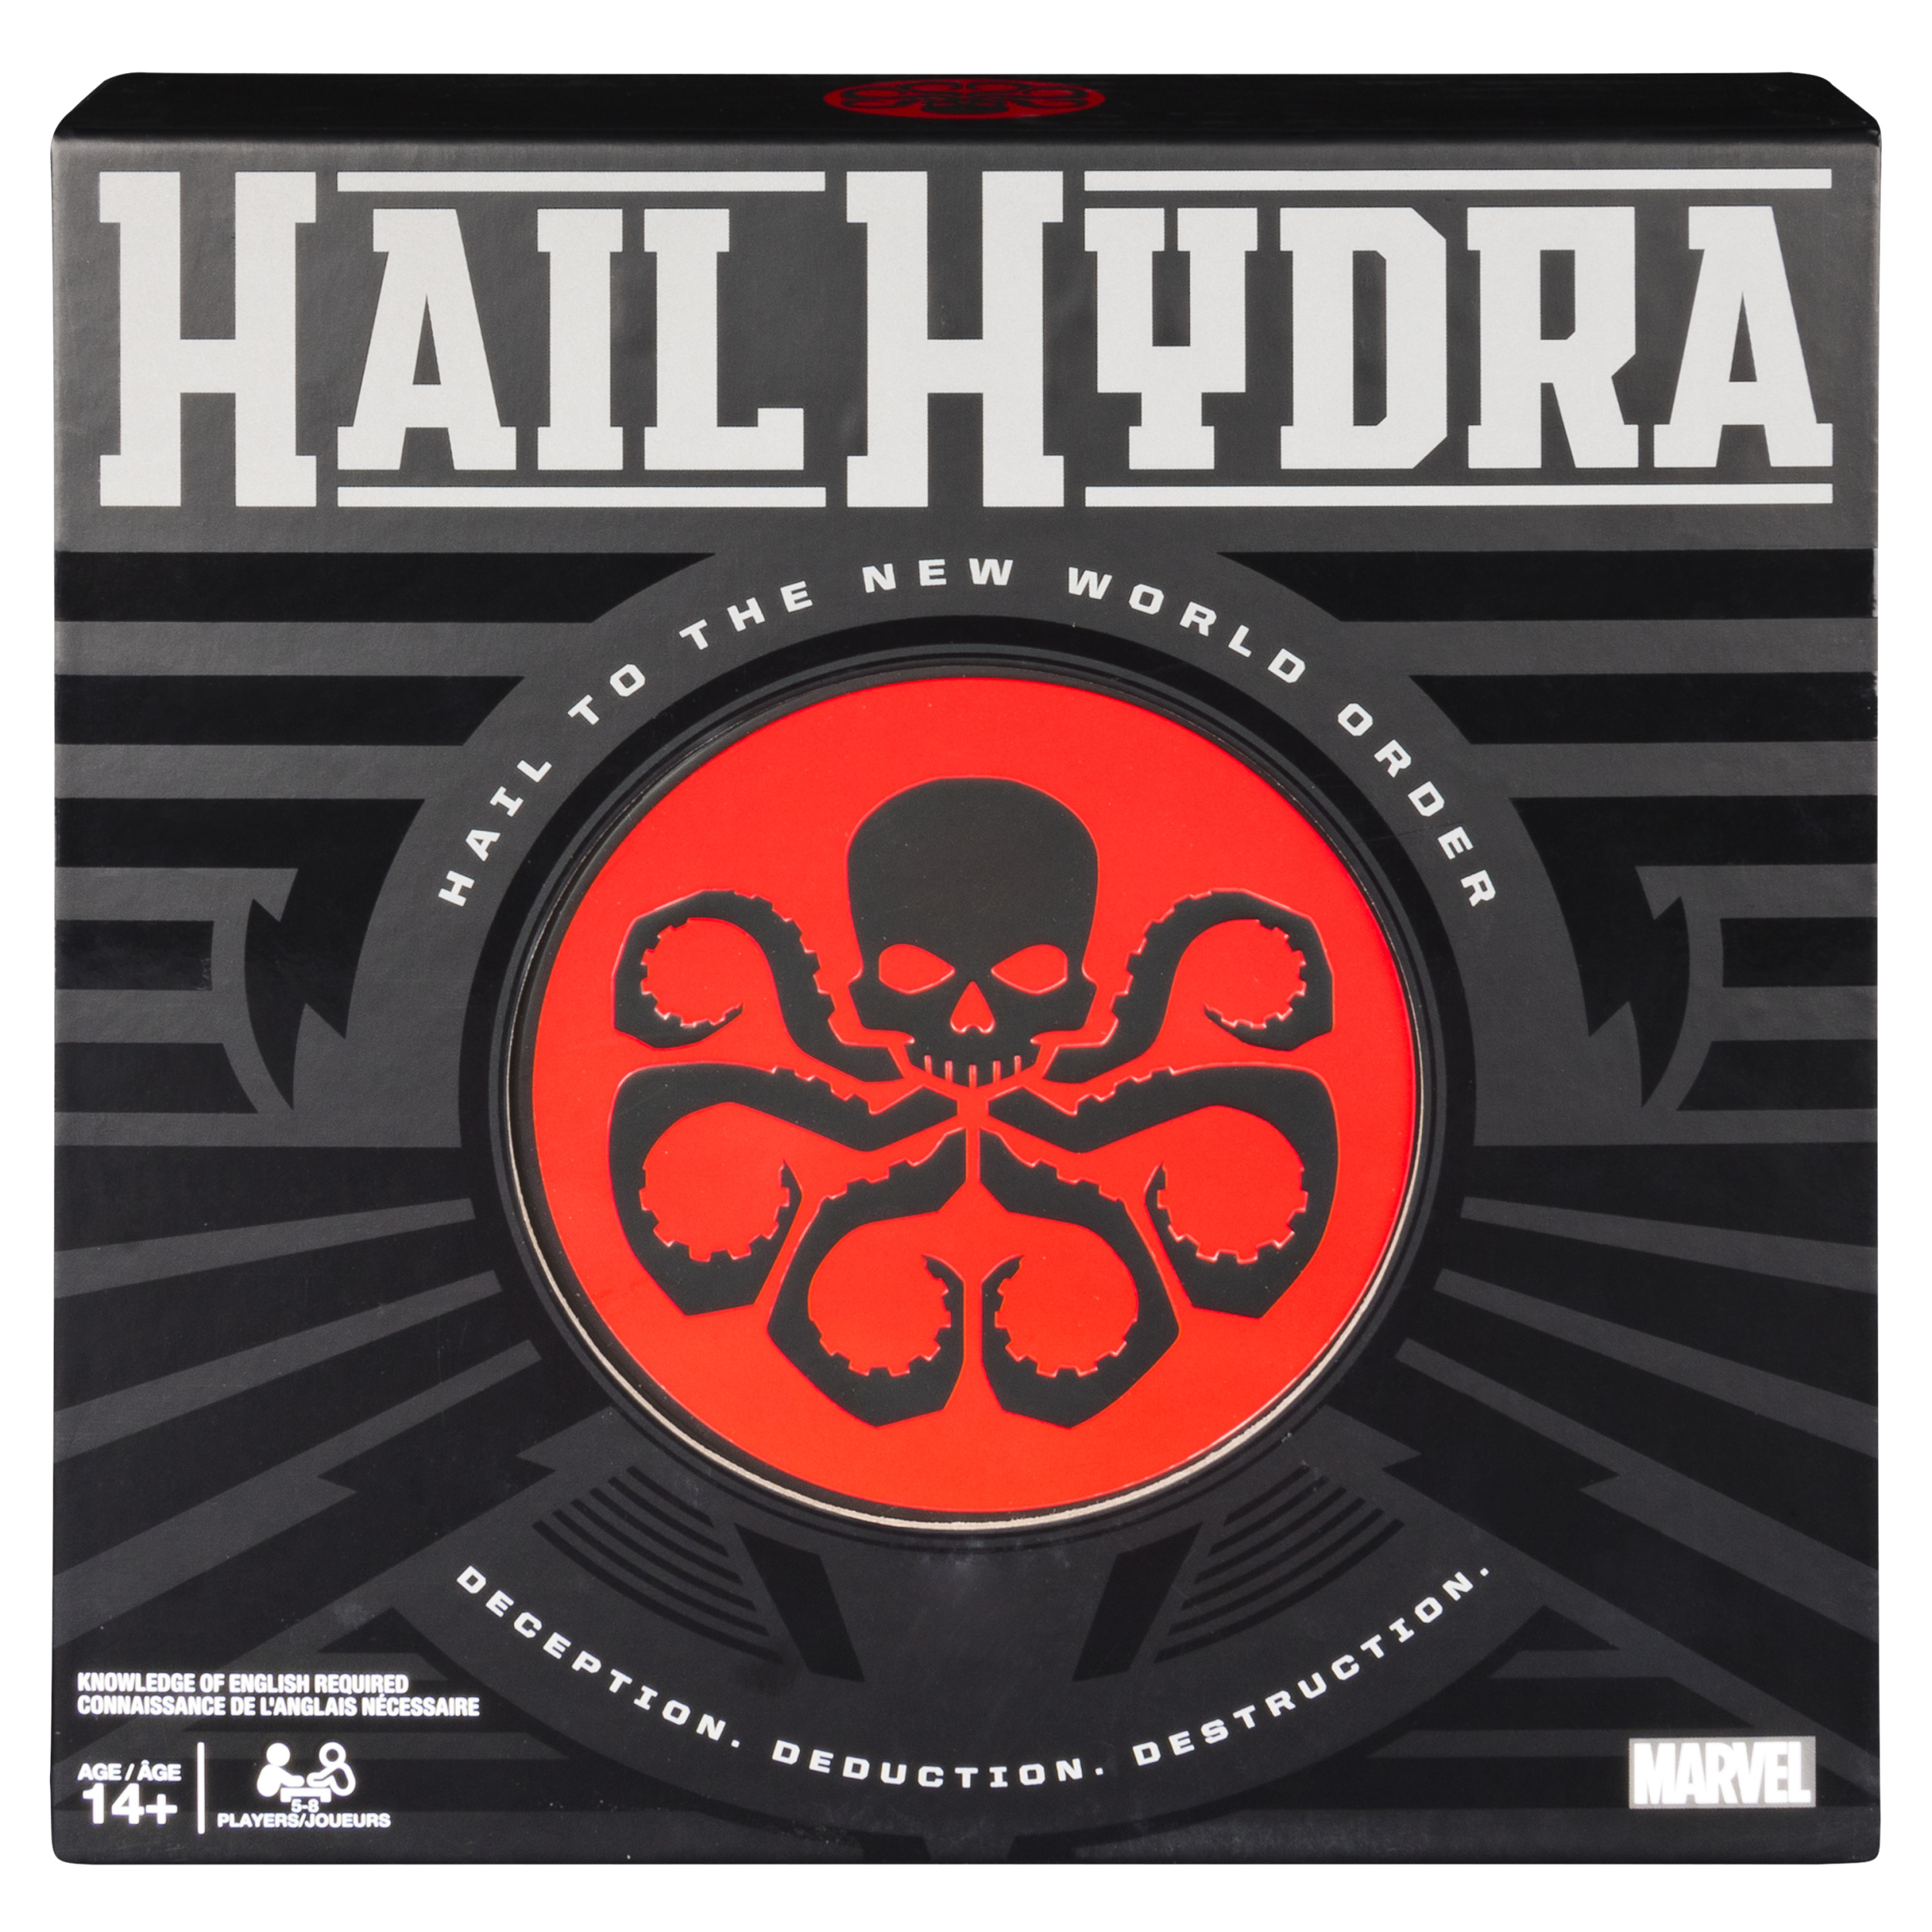 Hail Hydra, MARVEL Hero Board Game for Teens and Adults Aged 14 and Up by Spin Master Ltd